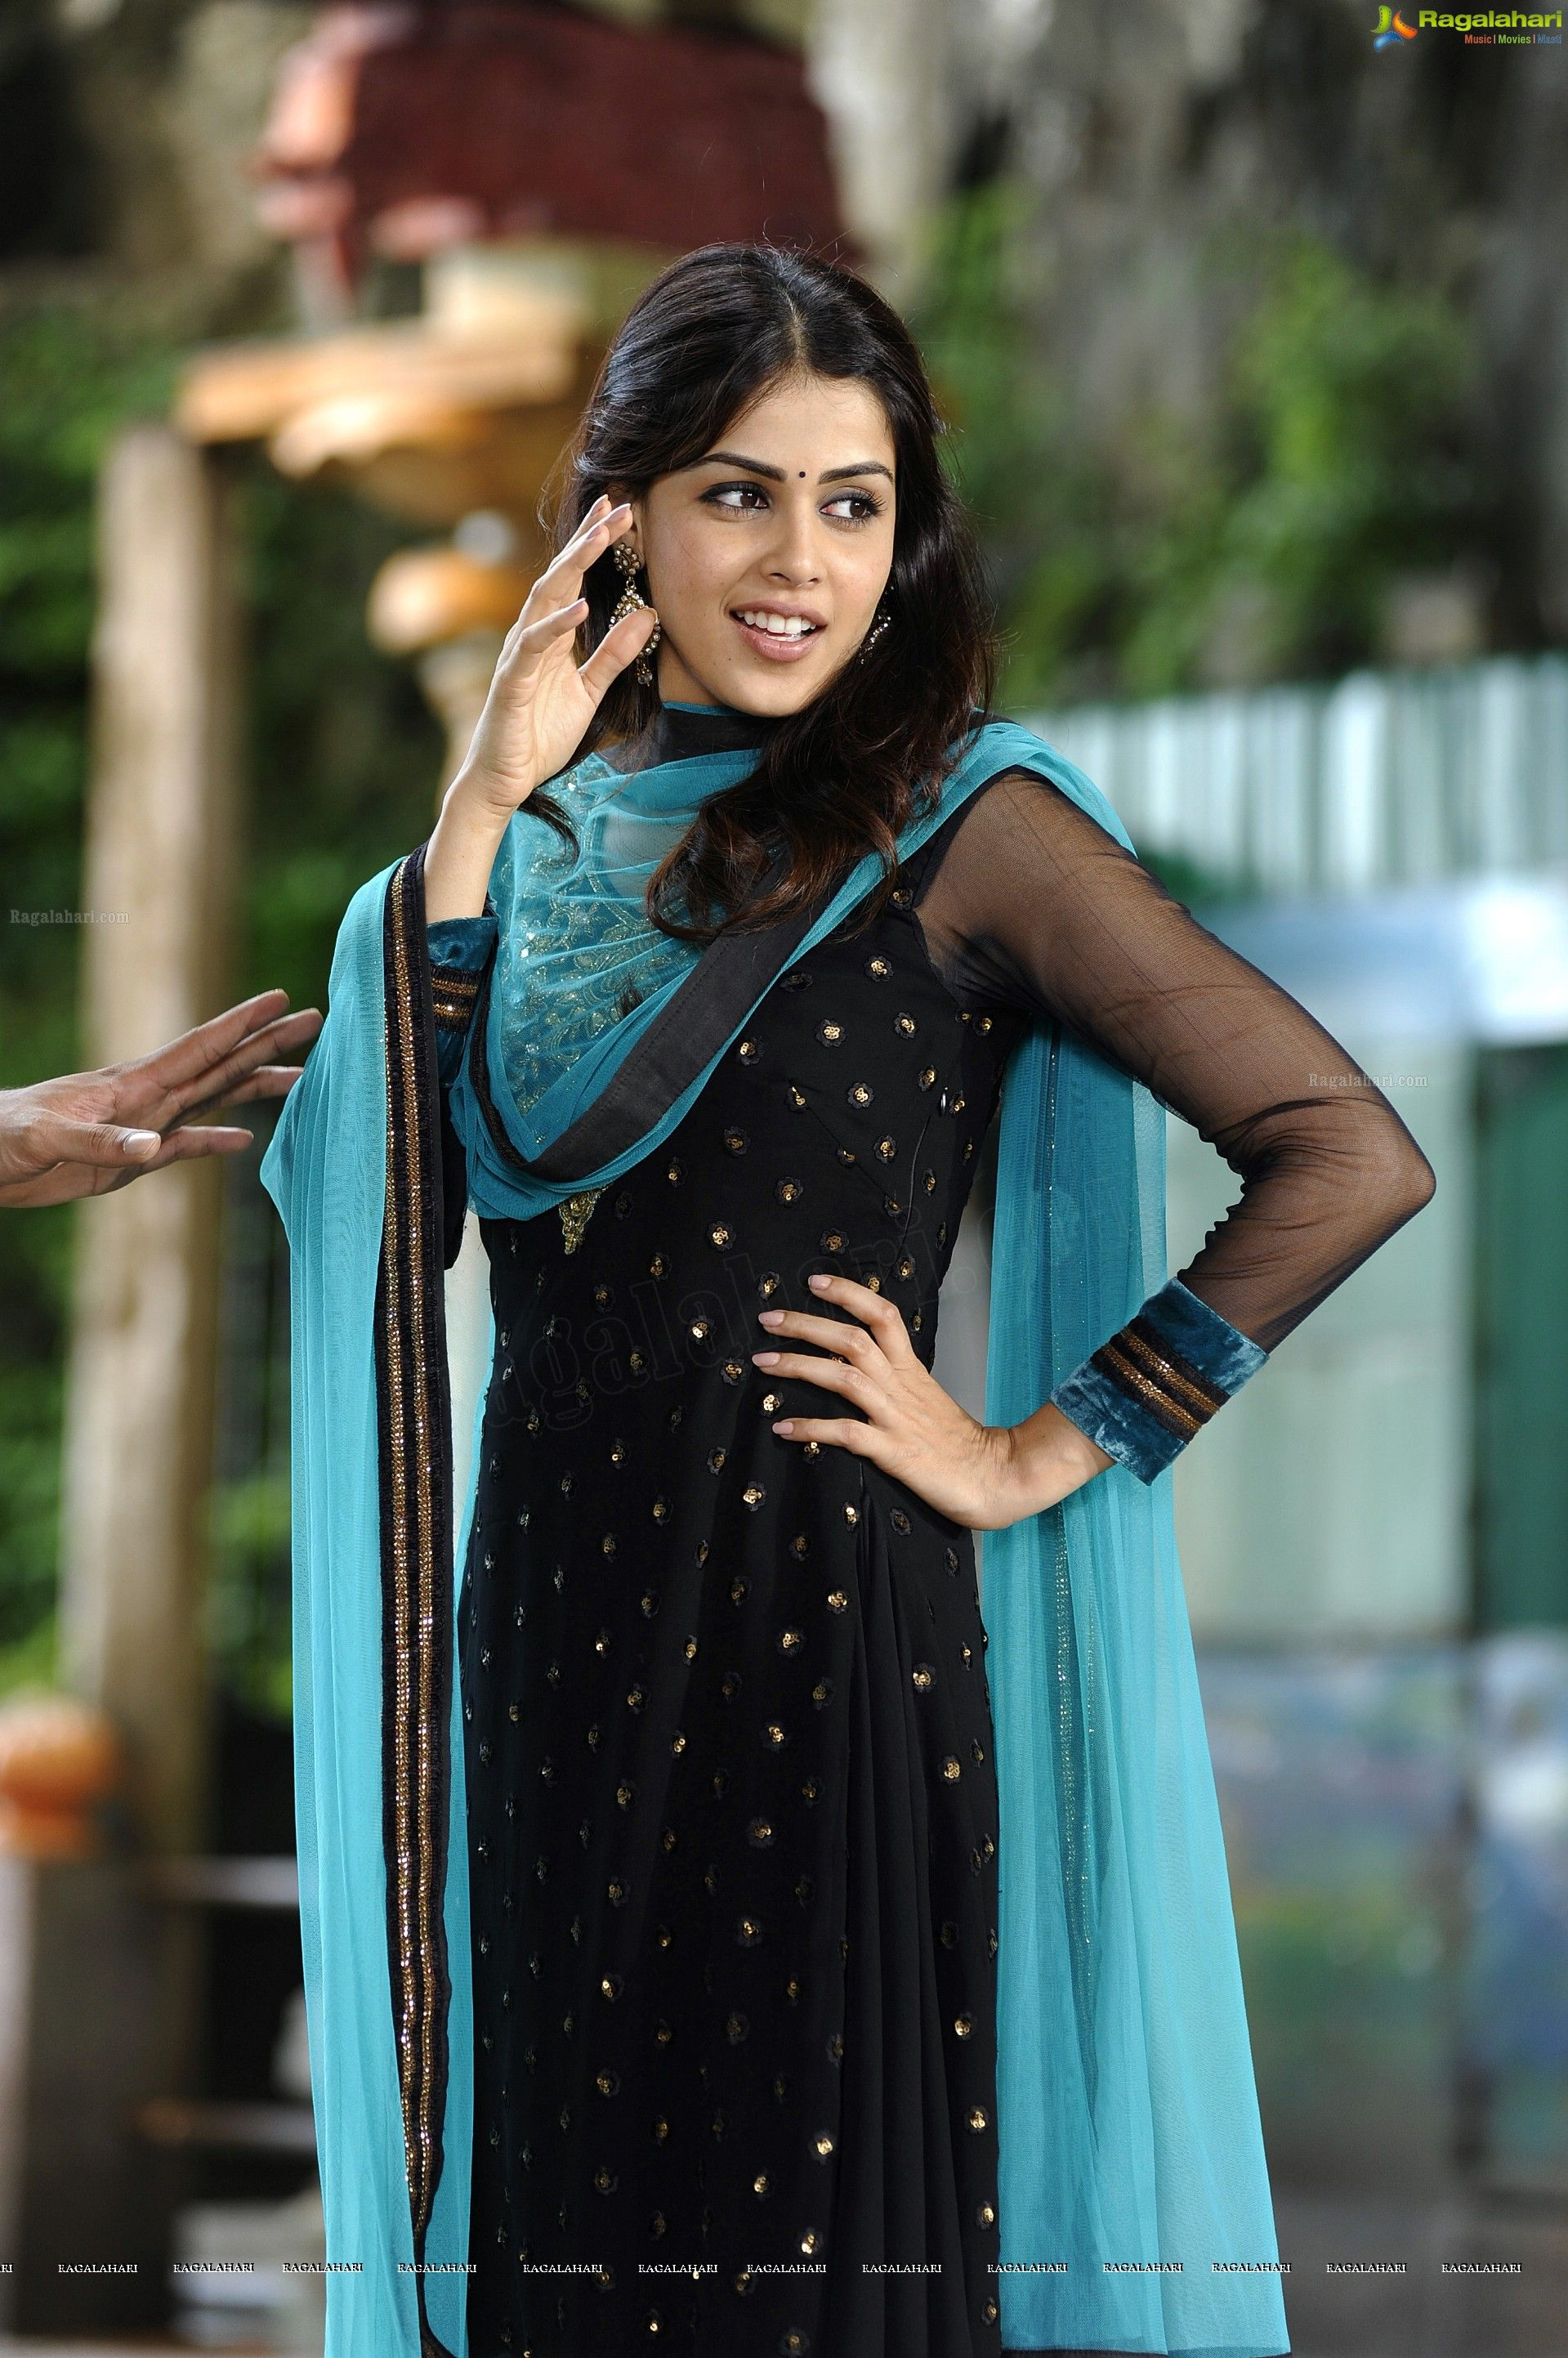 genelia dsouza hd photos wallpapers free download | jenelia